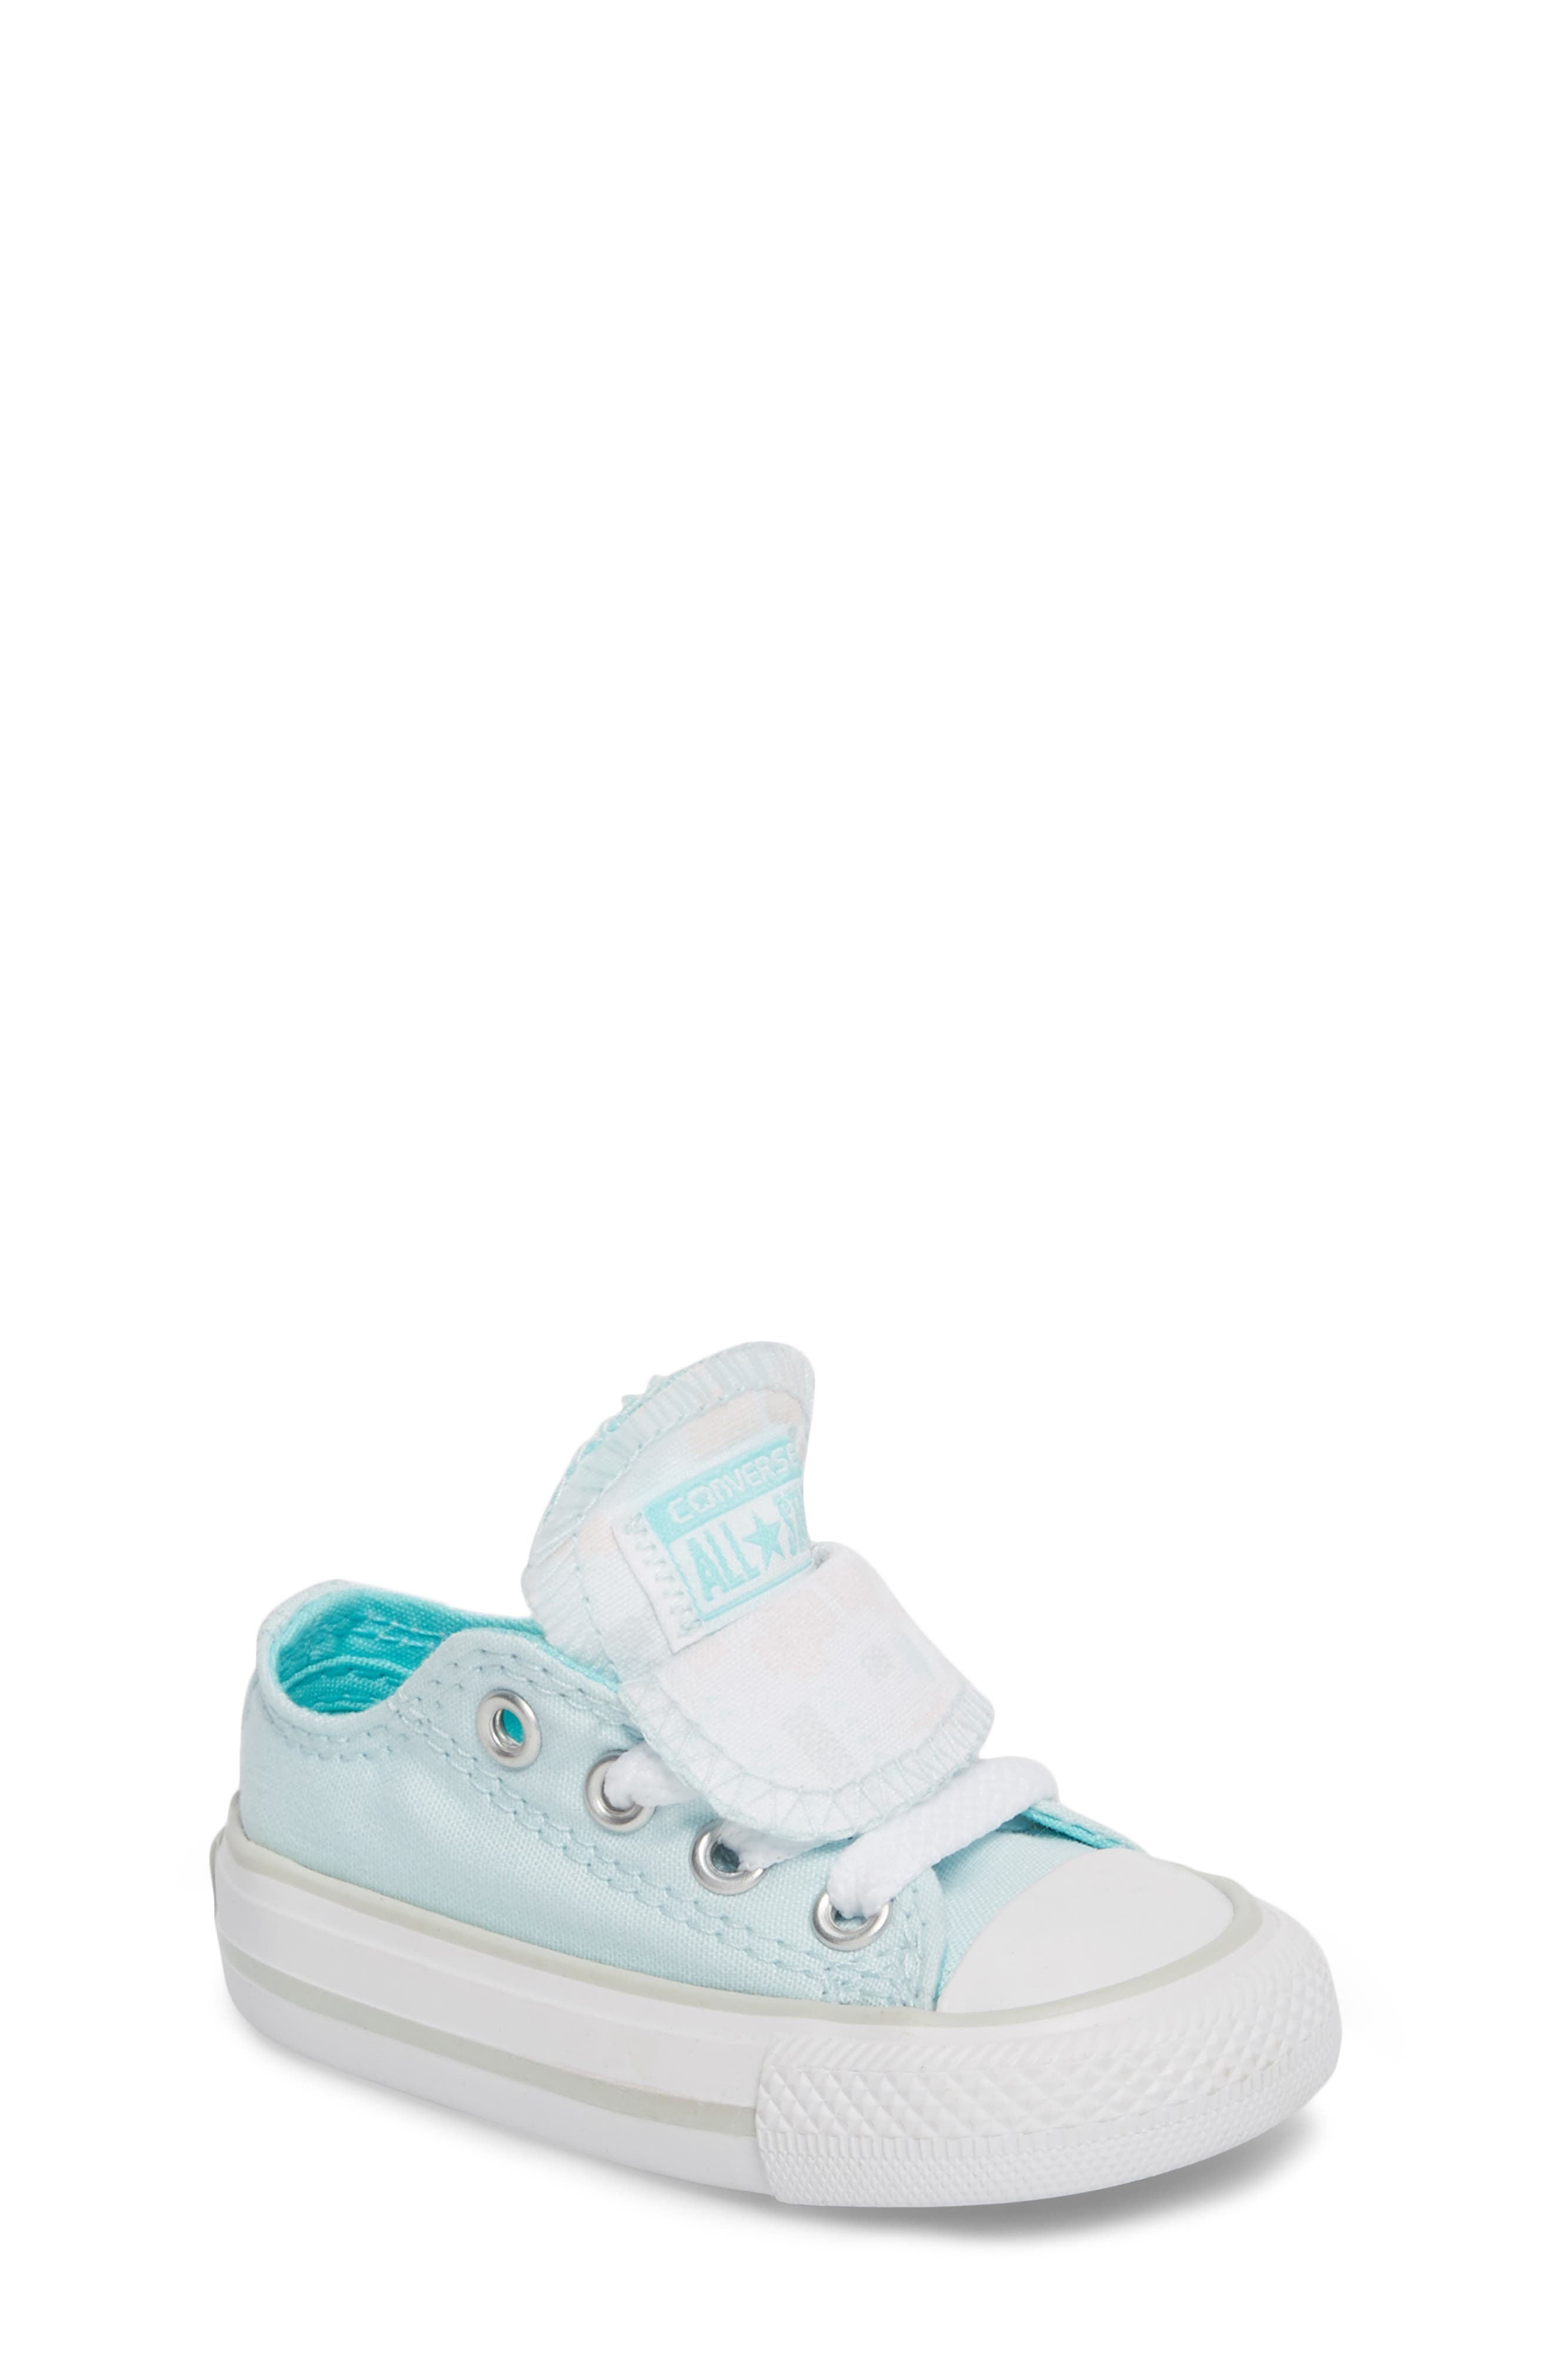 Converse All Star® Double Tongue Sneaker (Baby, Walker, Toddler, Little Kid & Big Kid)